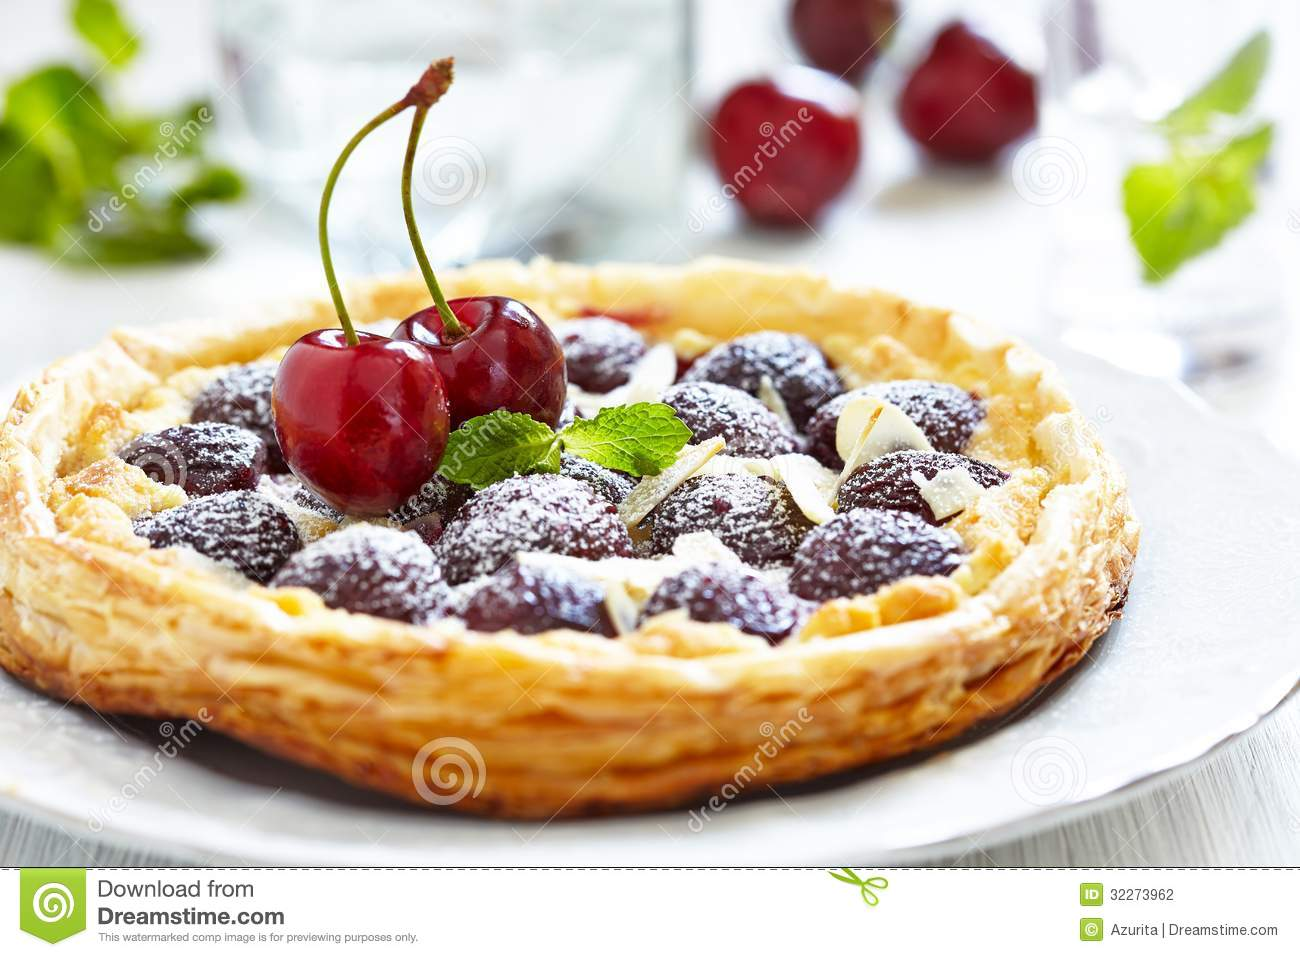 Cherry and Almond Tart